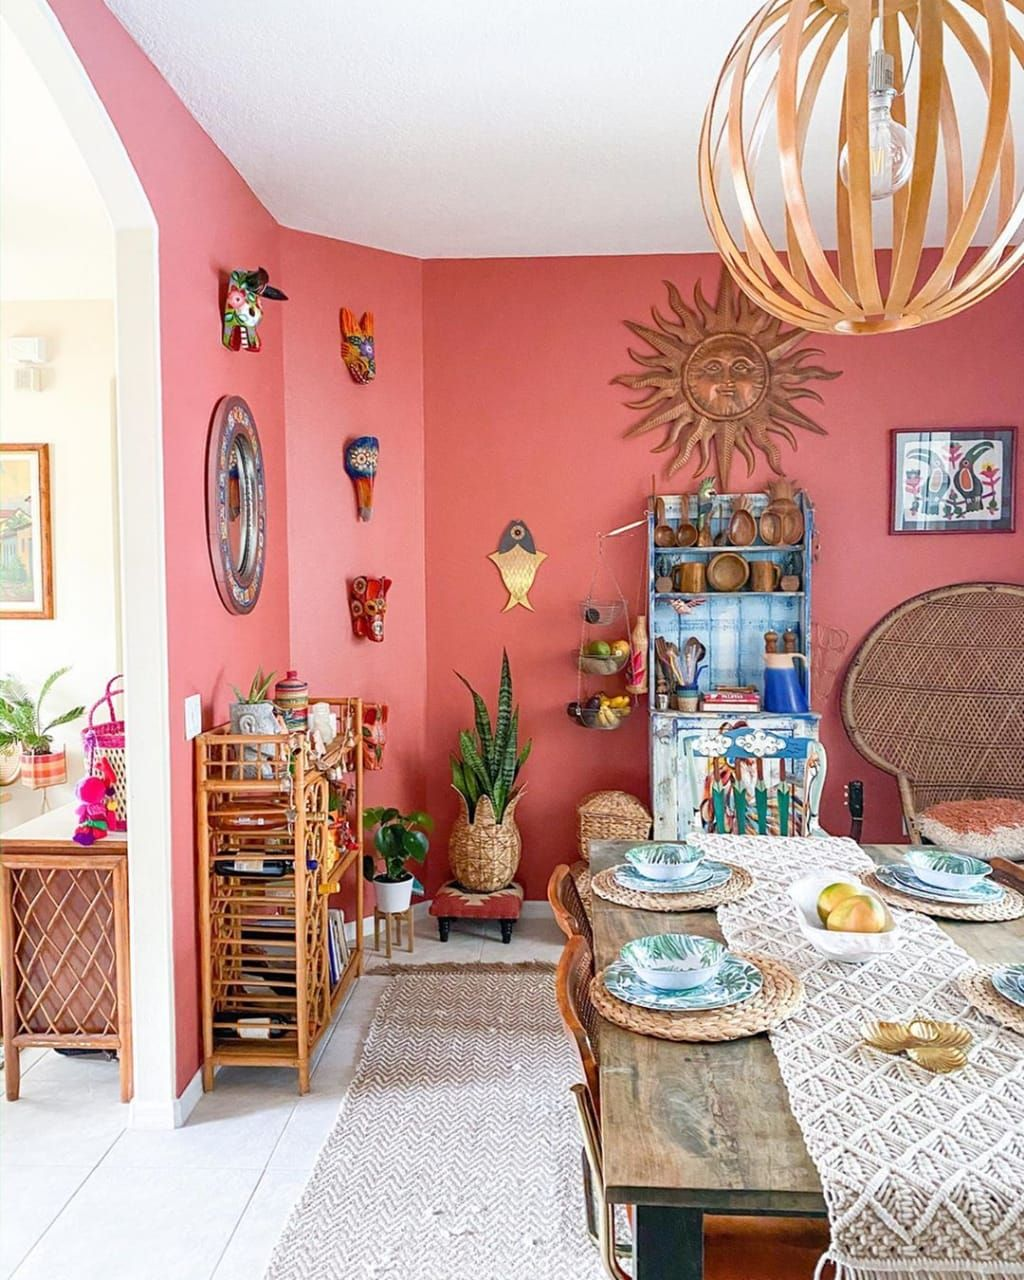 #bohemian #boho #decor #decoration #interiors #bohemianroom #roomdecor #homedecor #greenspace #indoorplants #eclecticdecor #eclectic #quirky #bohodecor #bohemiandecor #livingroom #outdoorspace #balconydecor #antiquedecor #antique #vintage #decorinspo #plants #homeproud #homedecorinspiration #vacaygoals #staycation #homedecorgoals Home decor ideas, home office, home office ideas, home interior design, home bacony, home decor